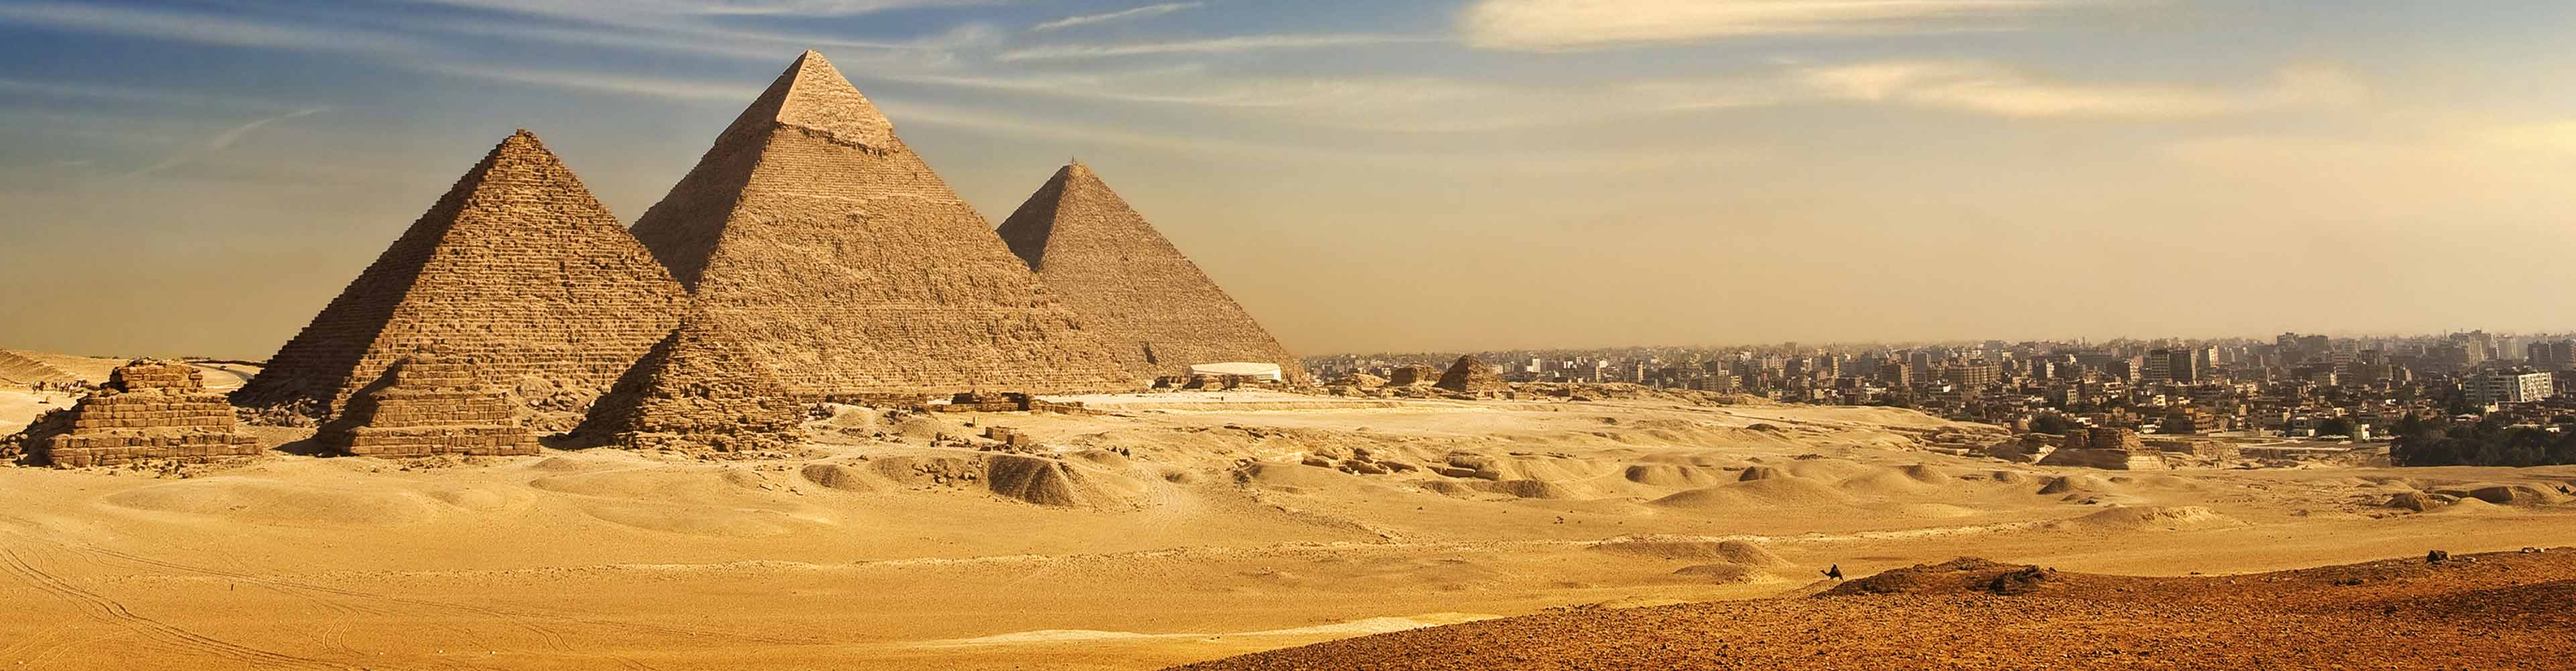 Pyramids, Mummies & Pharaohs – Limited Edition